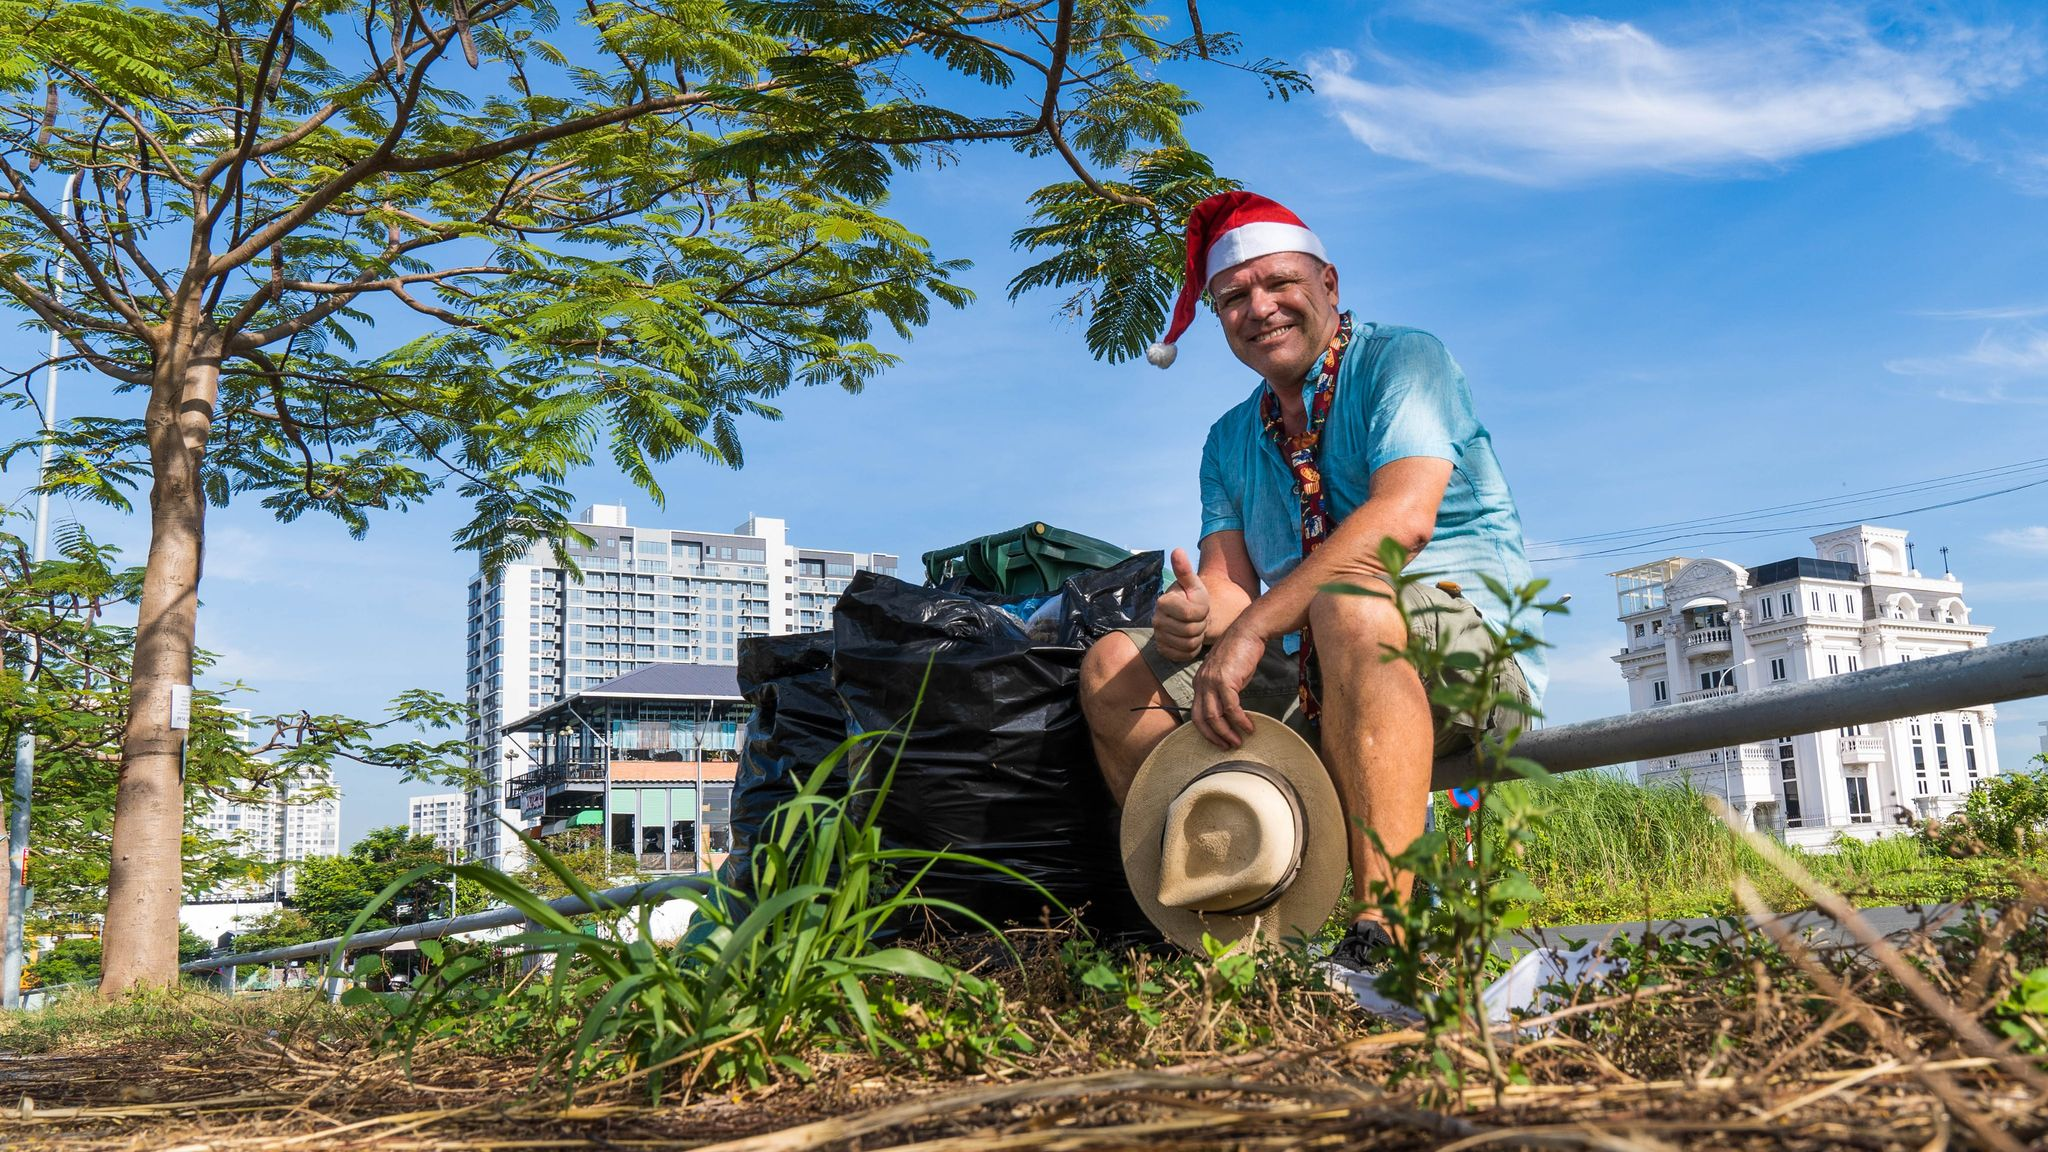 John Petter Klovstad from Norway poses for a picture with a bag of rubbish he picked up during his morning jogging routine in December in Ho Chi Minh City. Photo: Supplied